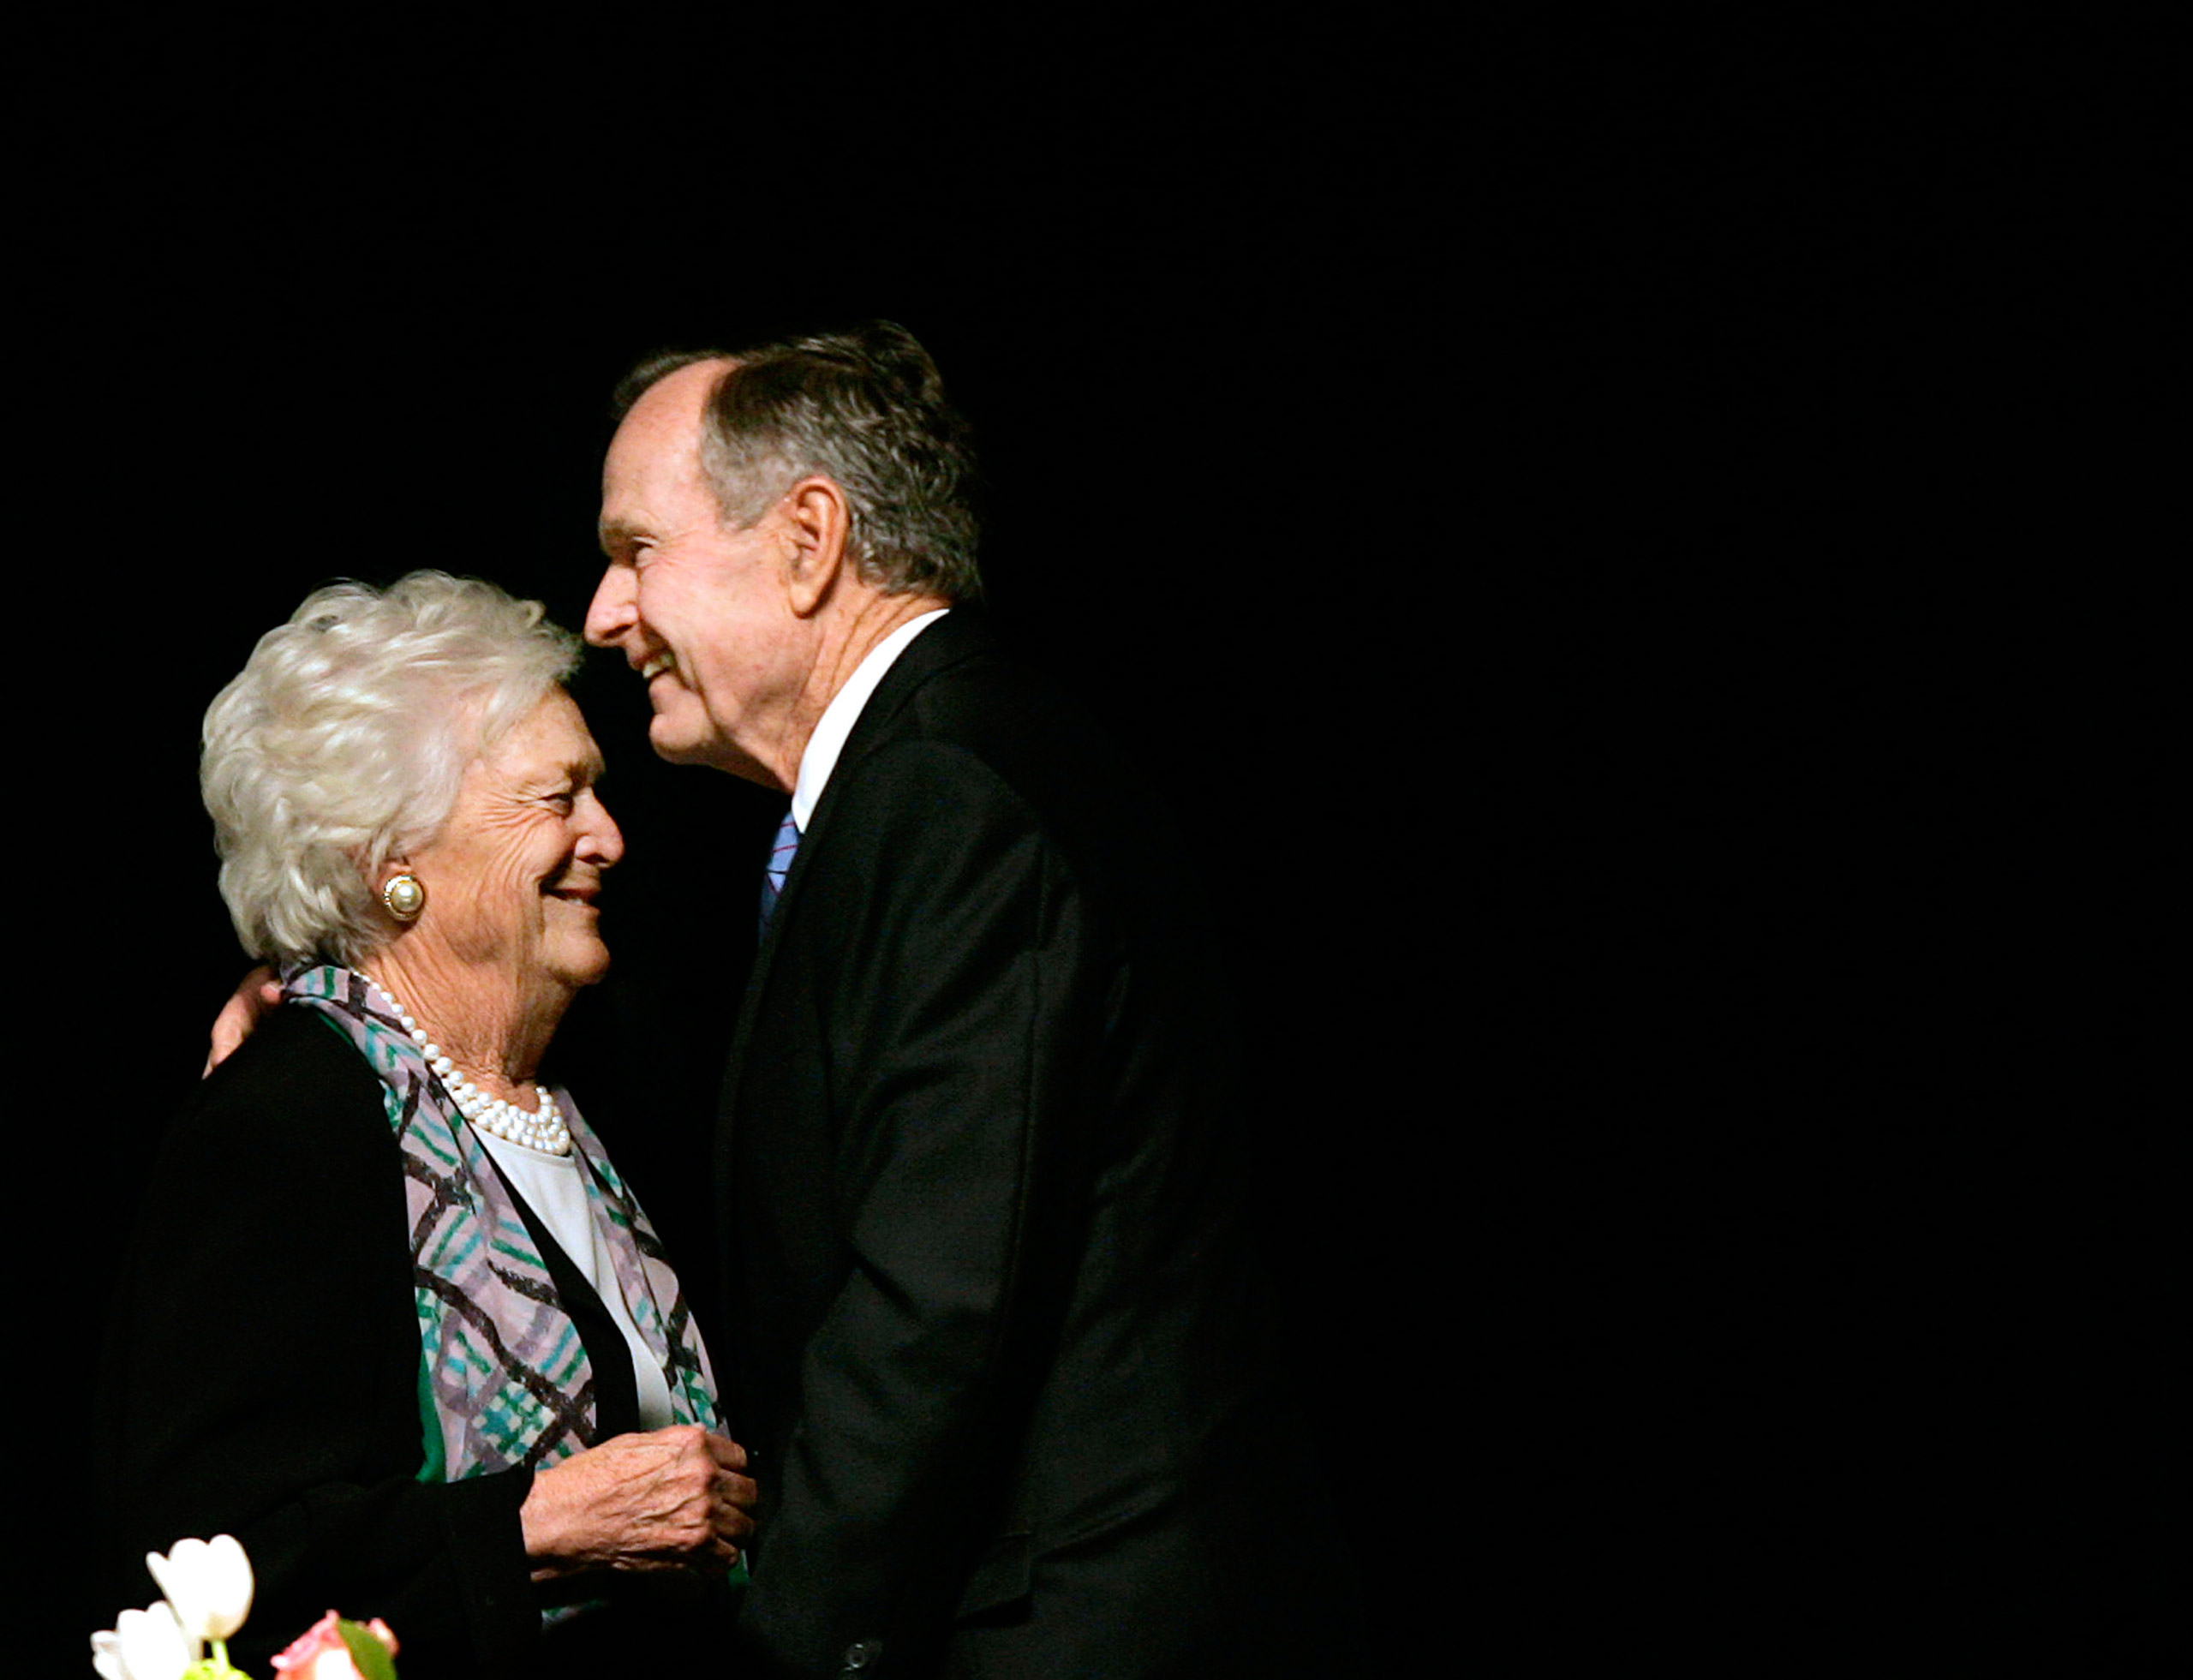 Former President George H.W. Bush, embraces former First Lady Barbara Bush after she introduced the former President at the Genesis Women's Shelter Mother's Day Luncheon in Dallas, Texas, on May 3, 2006.